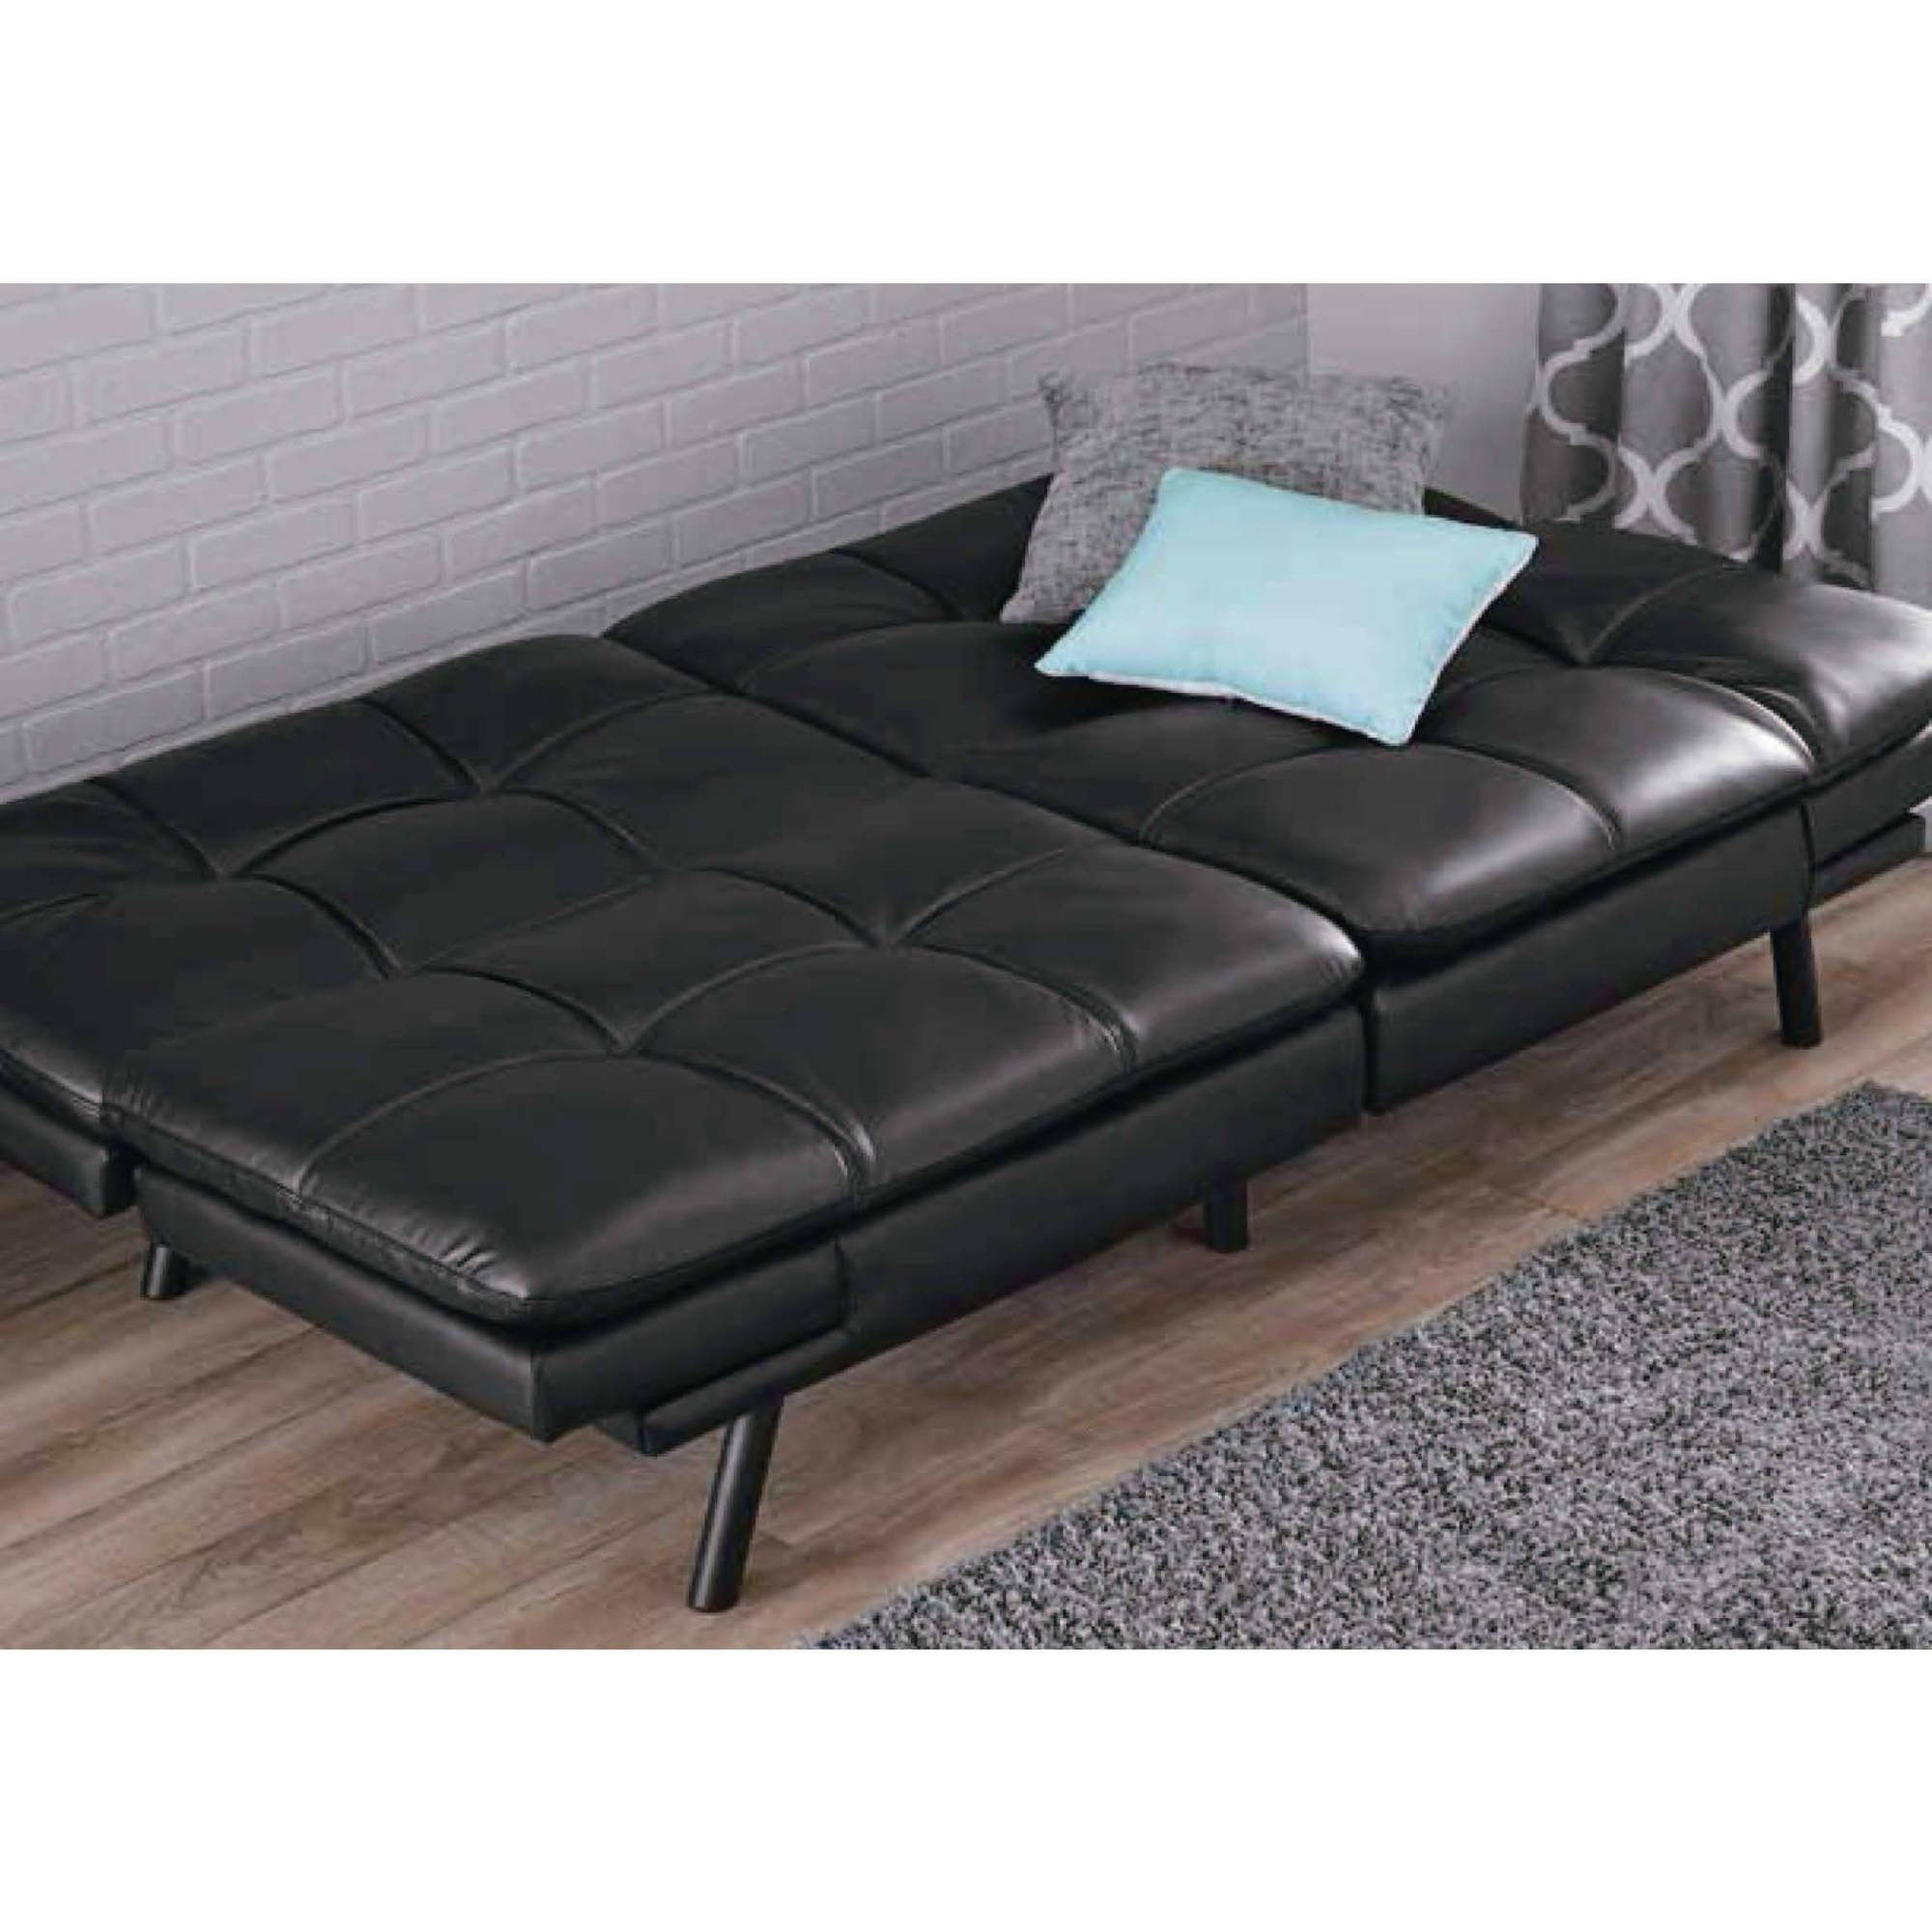 20 Best Mainstay Sofas   Sofa Ideas In Mainstay Sofas (View 2 of 15)